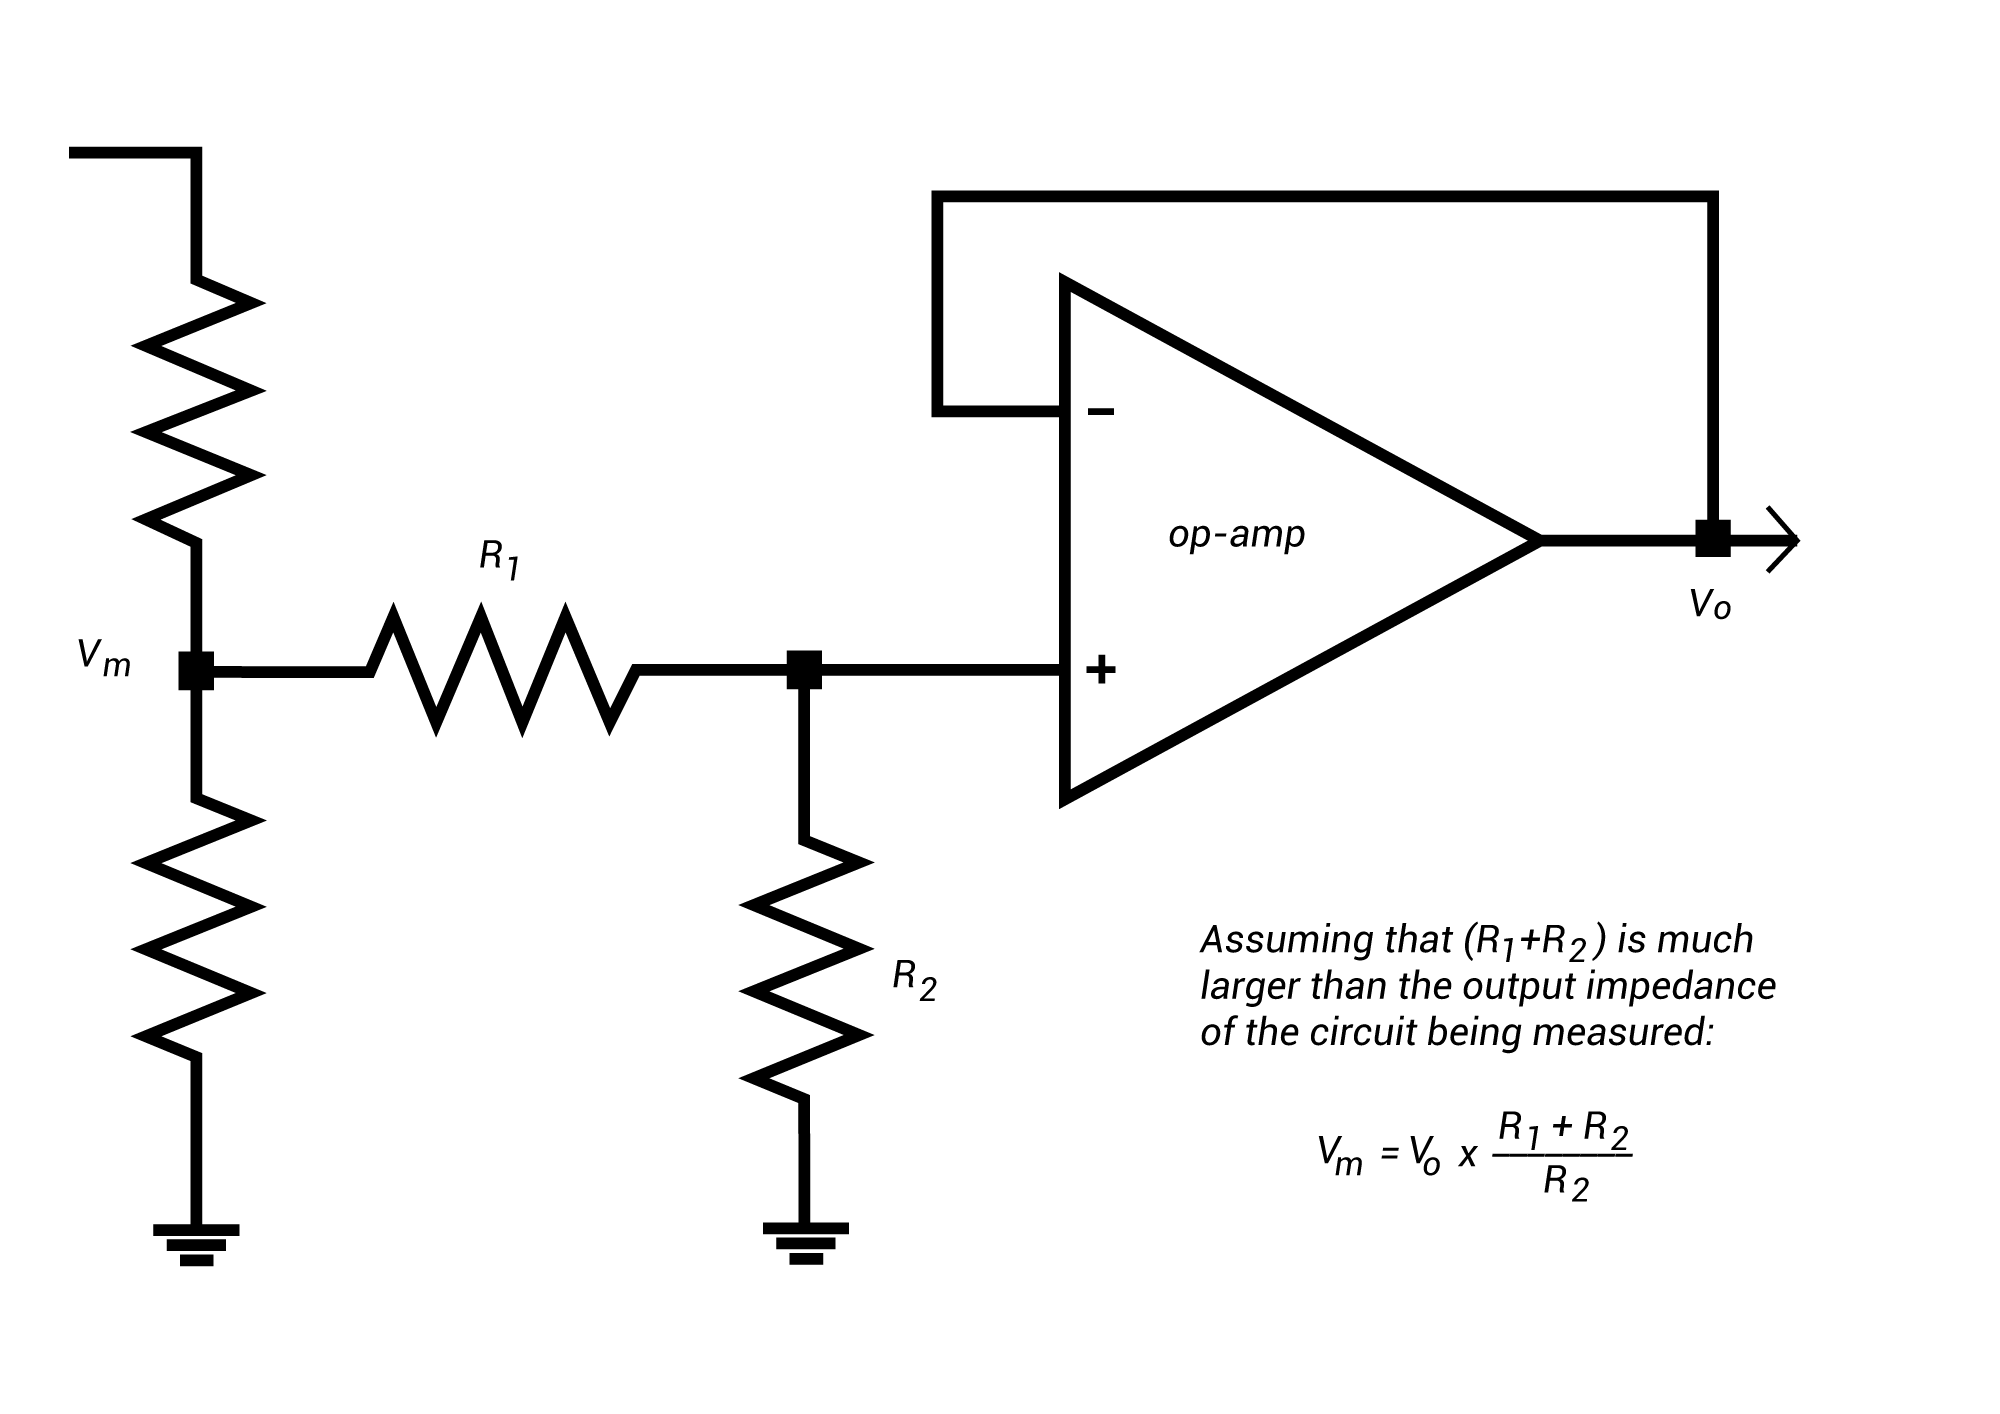 the current monitoring circuit